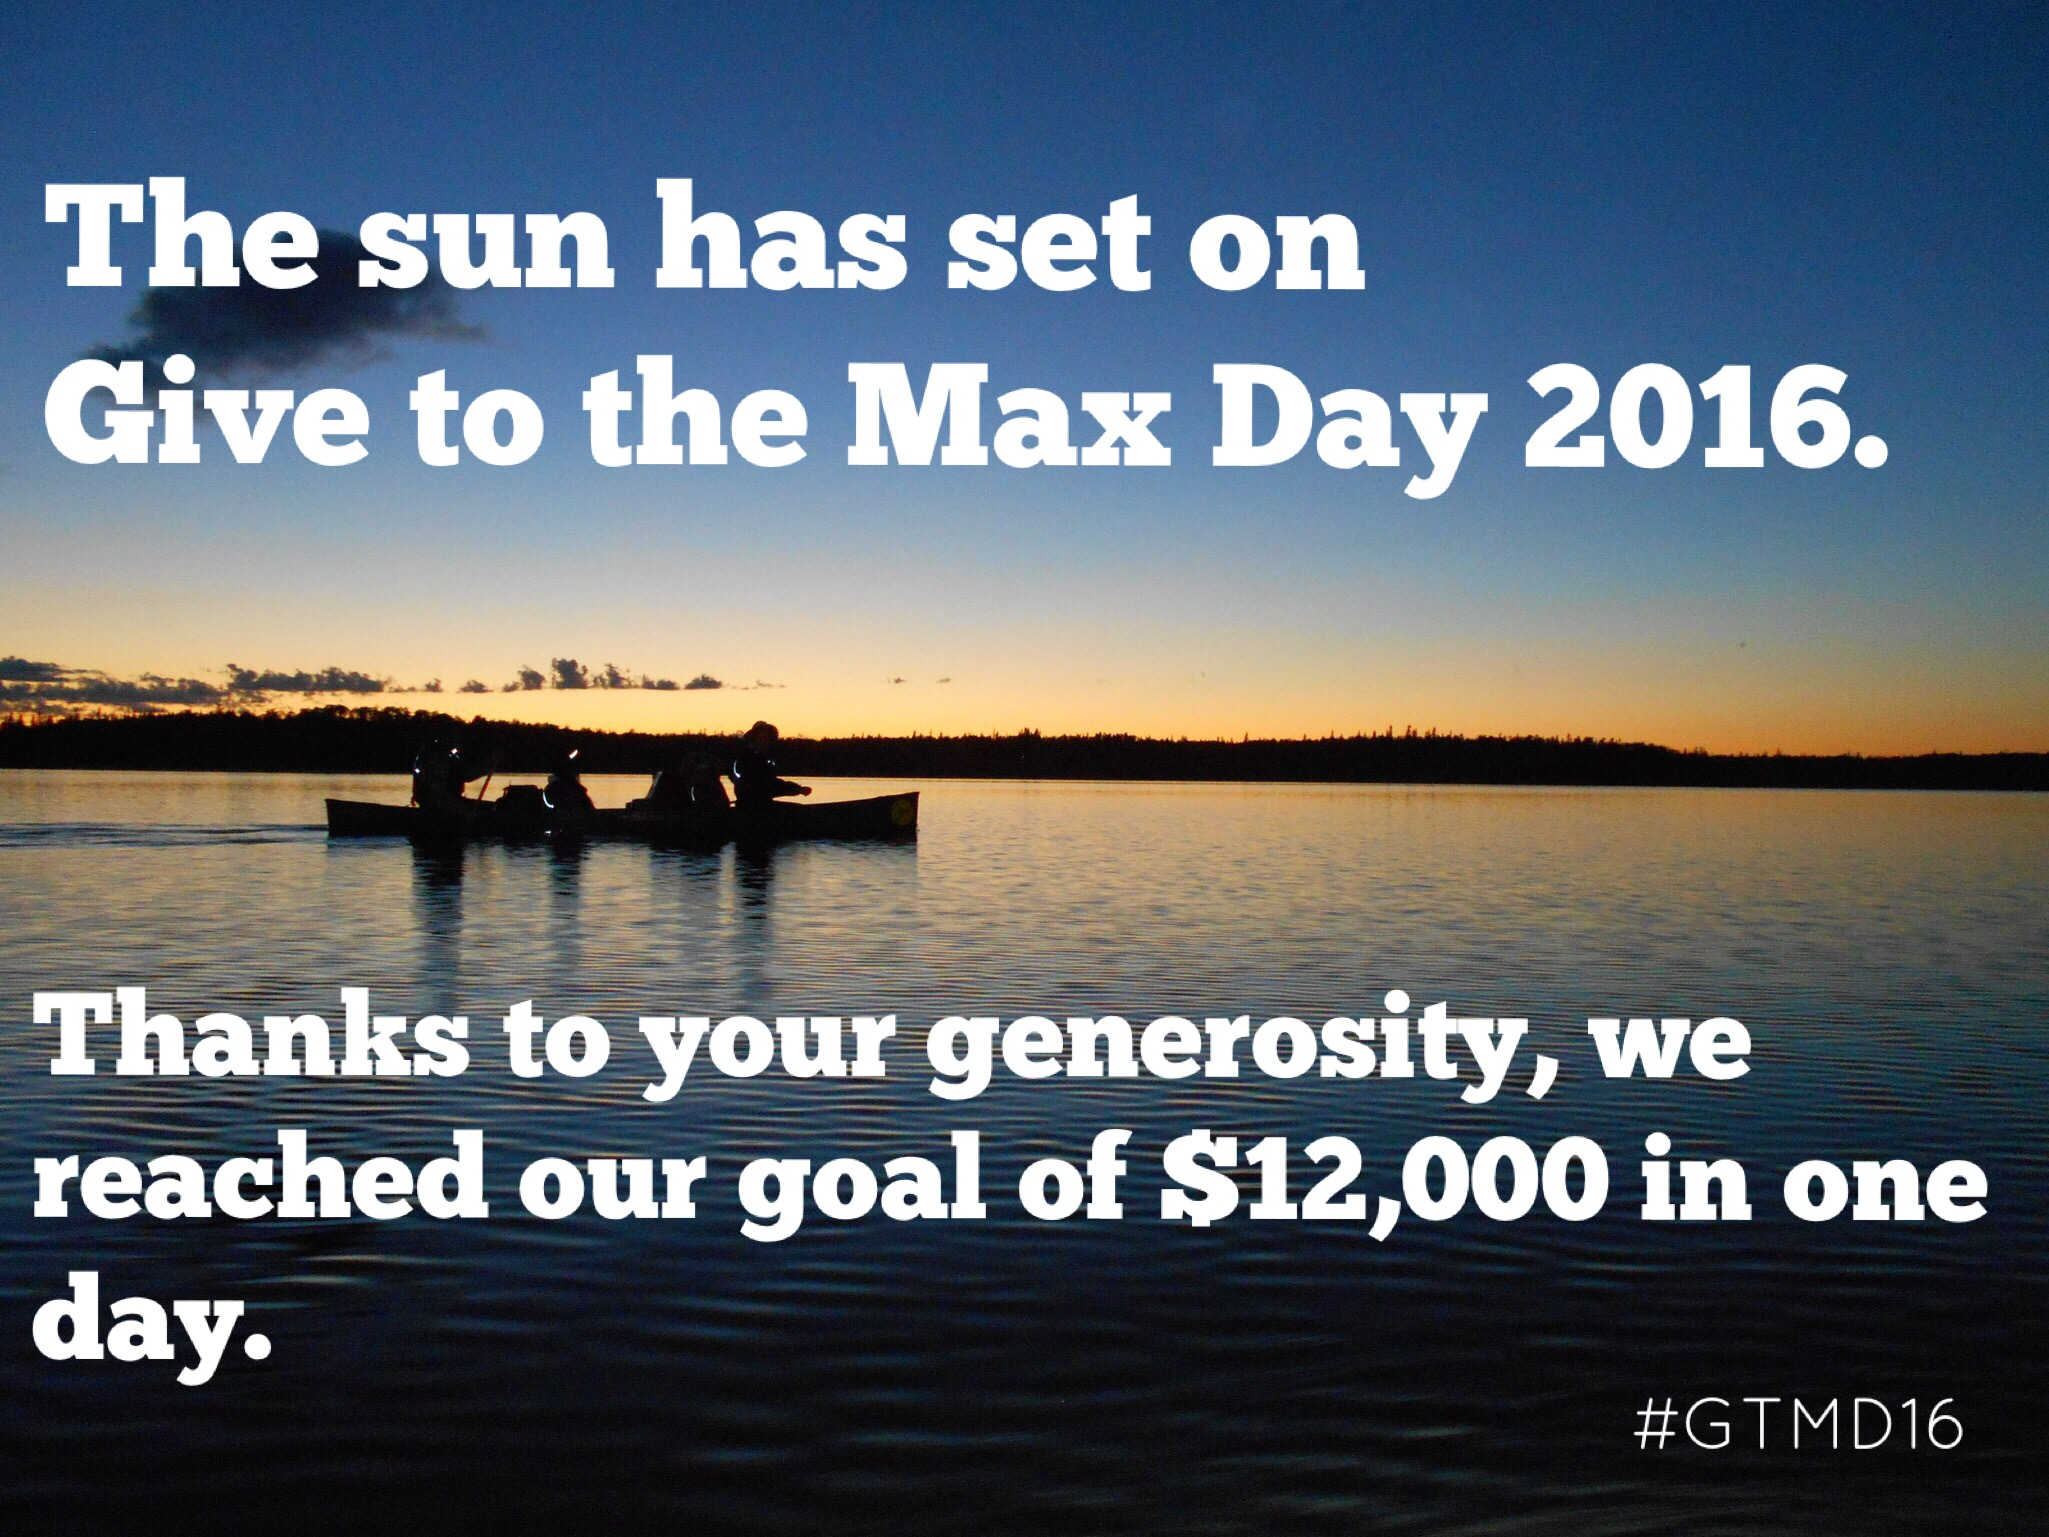 Give to the Max thank you